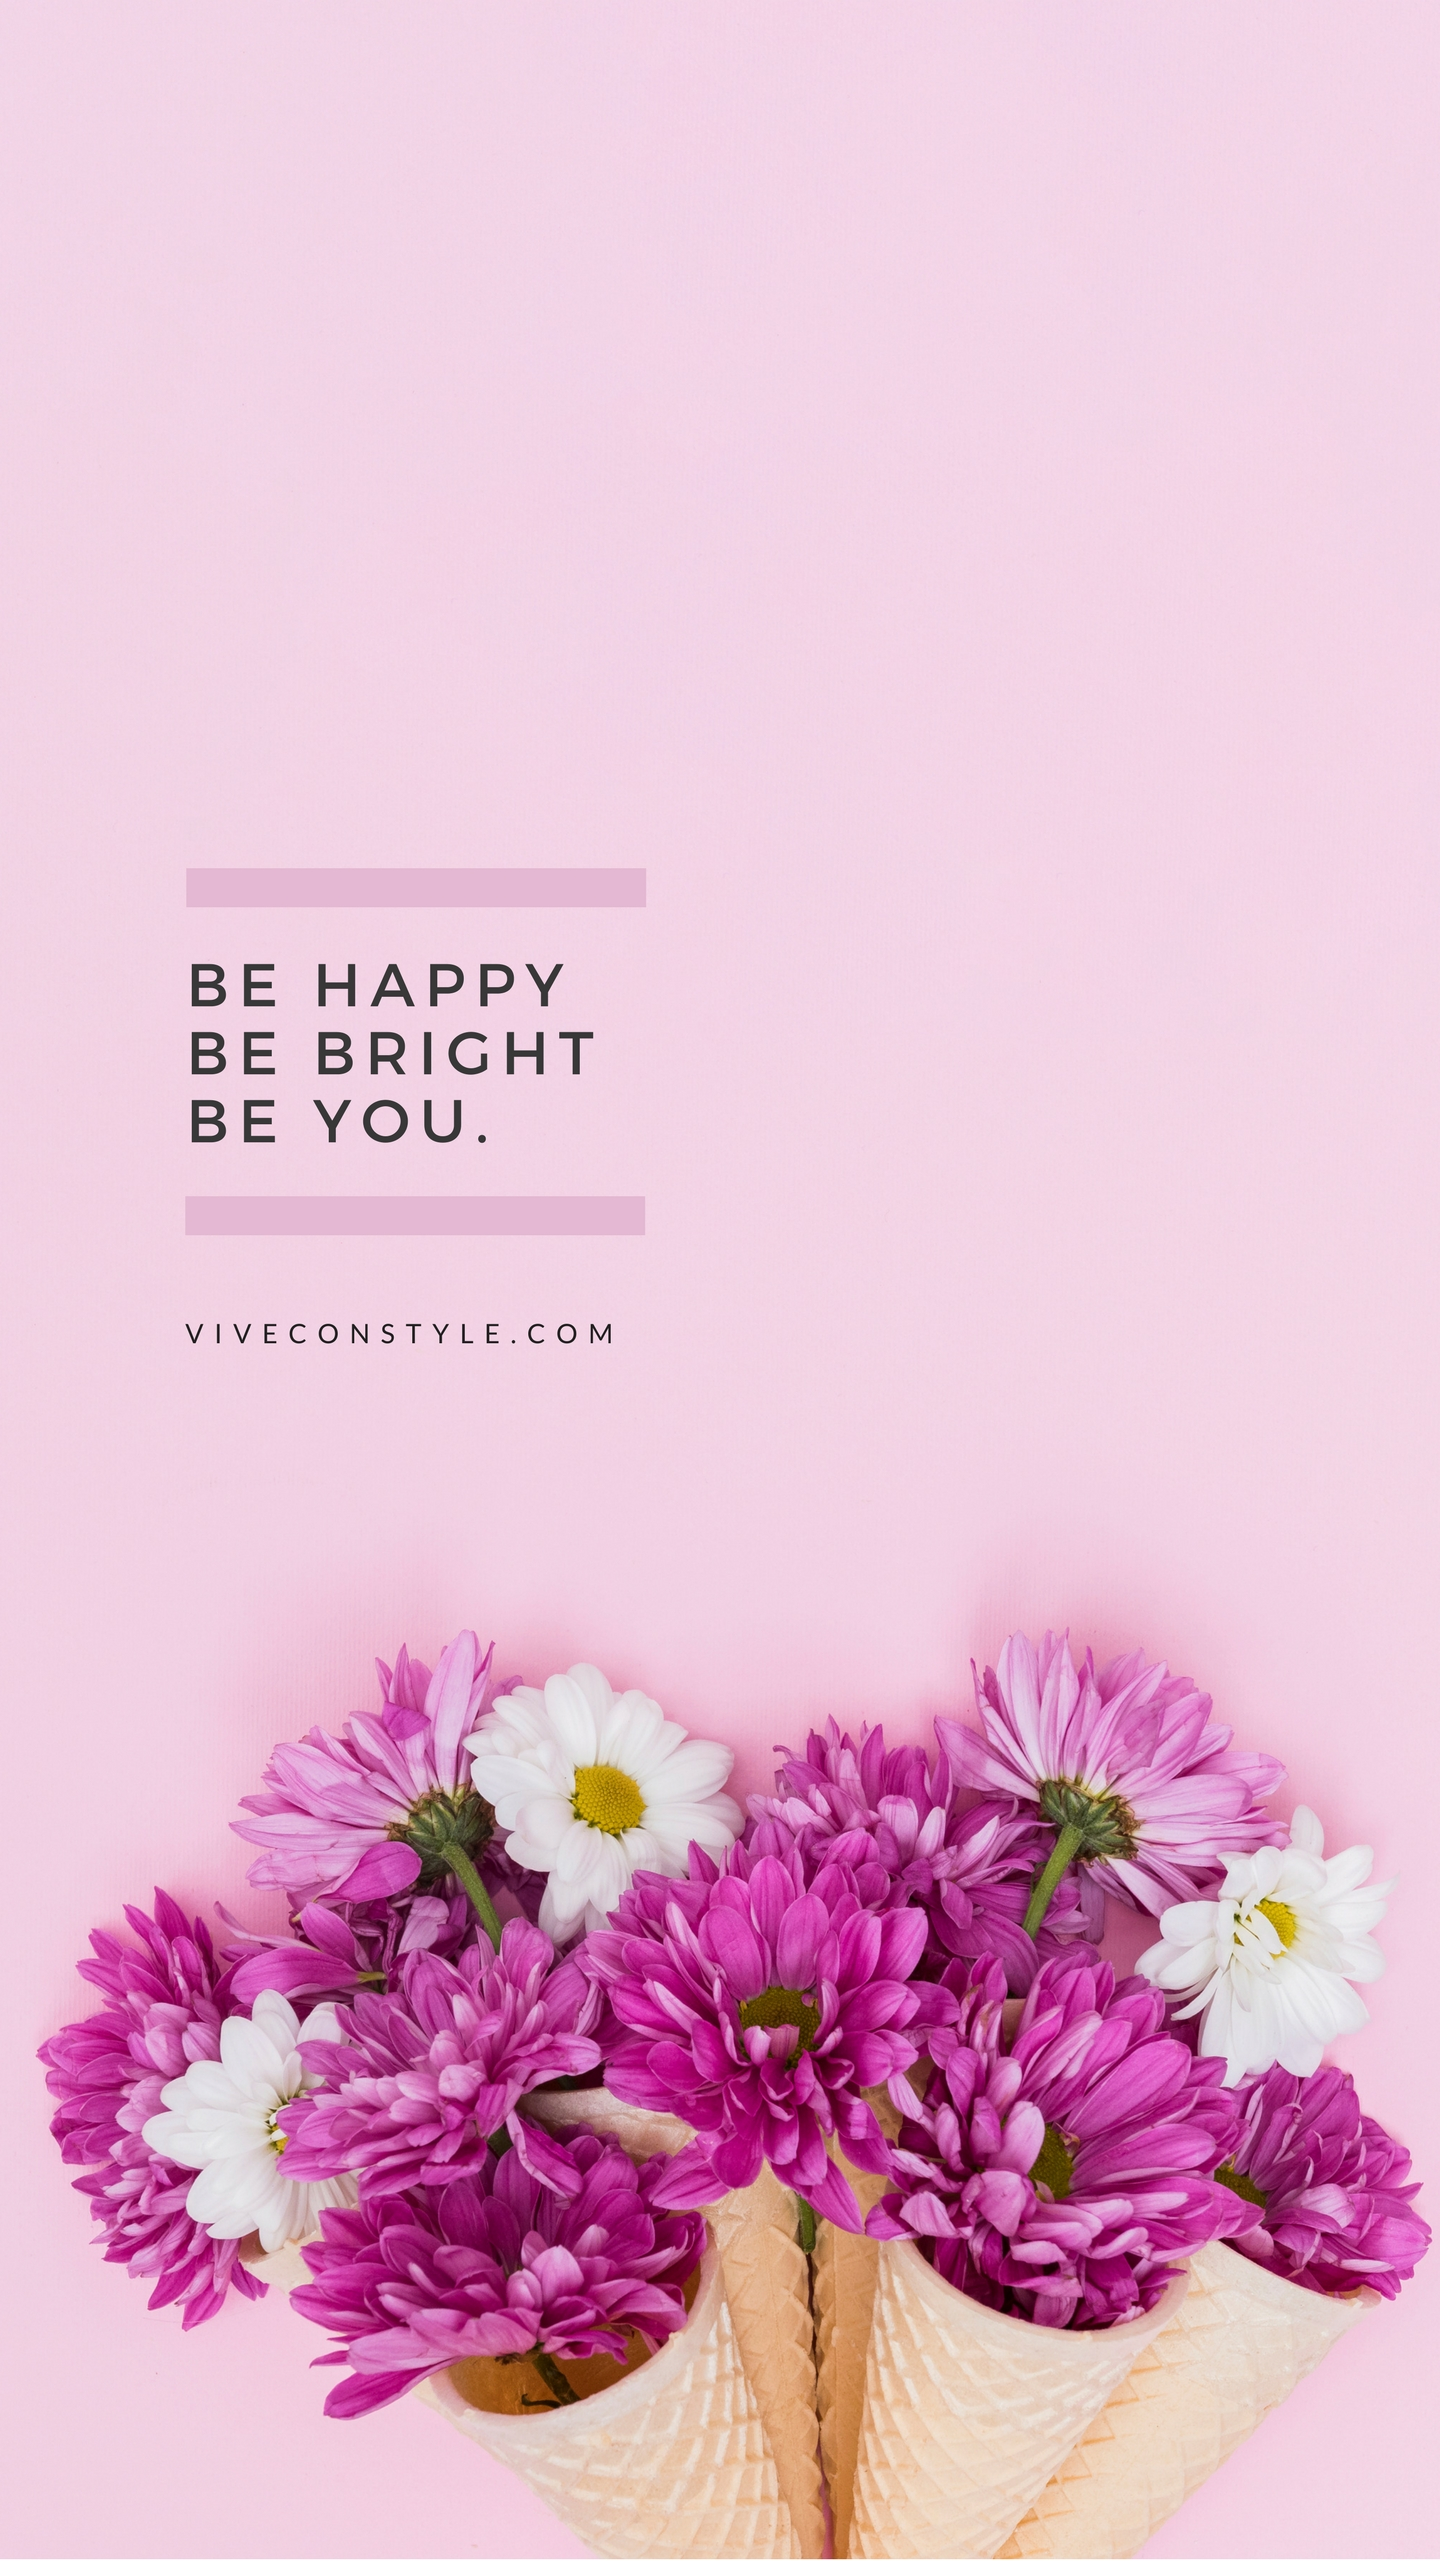 Be Happy Bright You Mobile Wallpaper